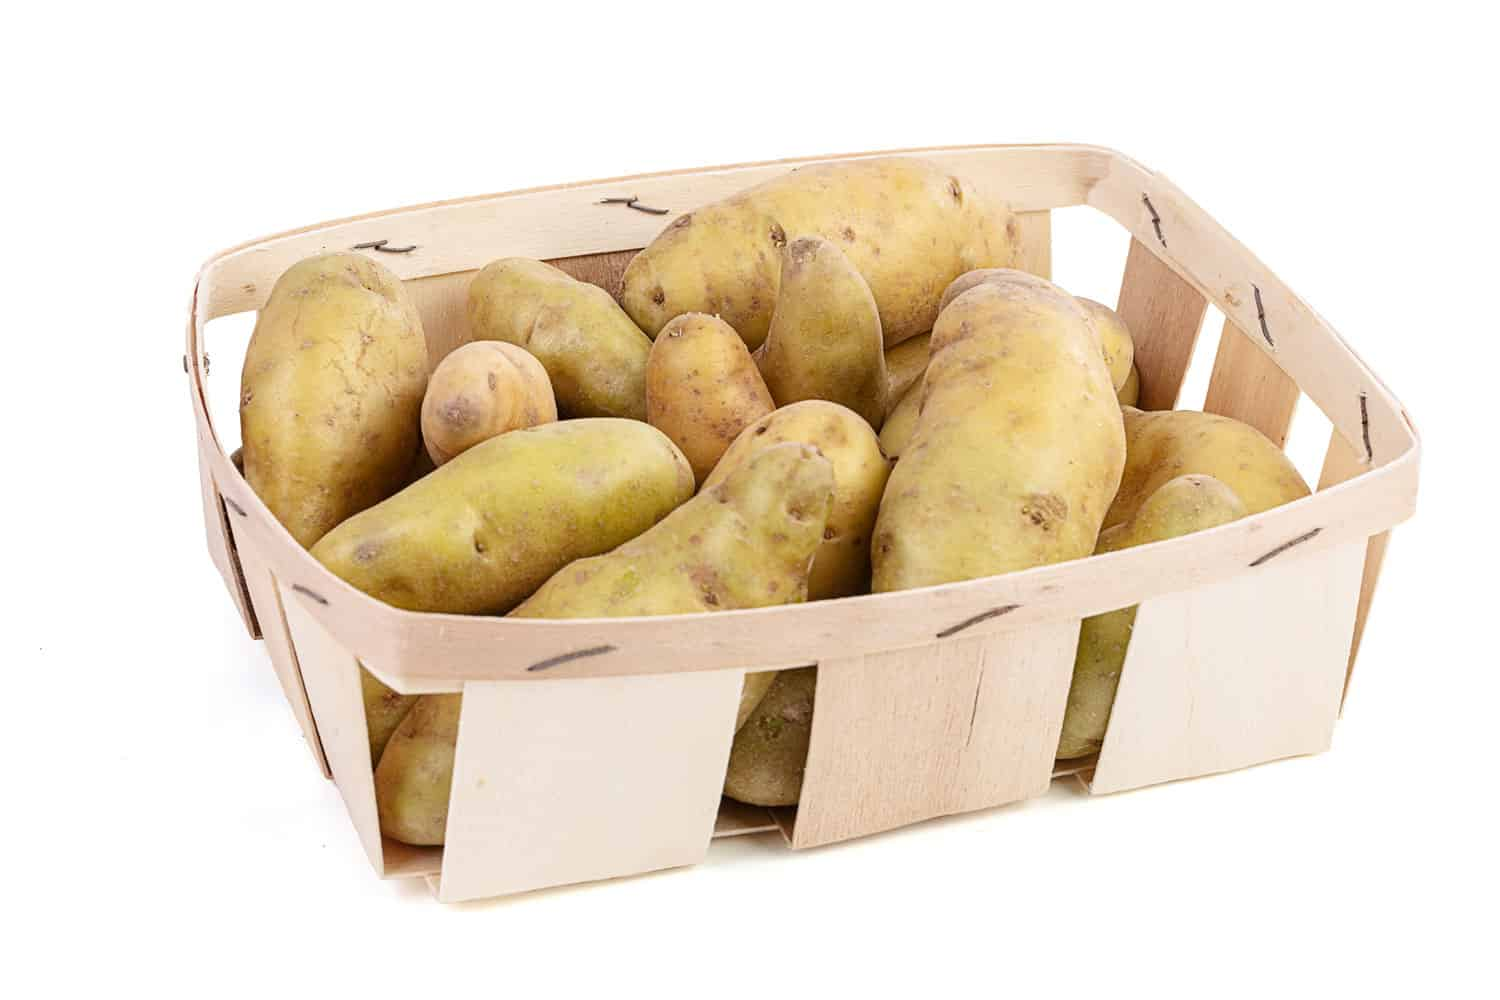 Potatoes placed on a tray on a white background